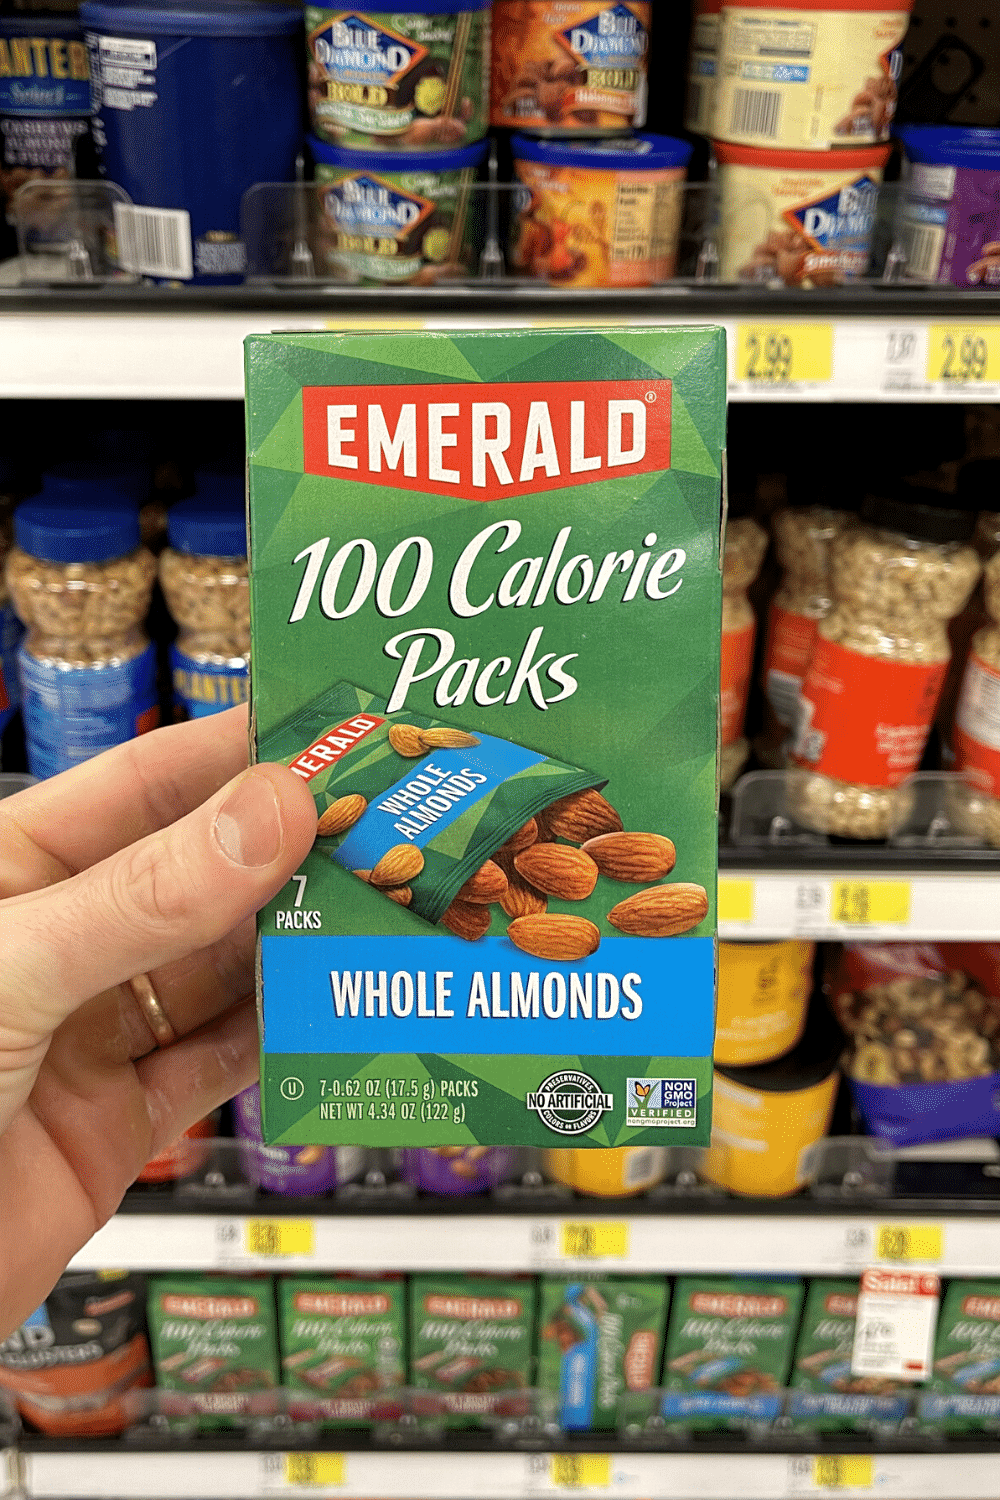 A hand holding a box of almond snack packs.